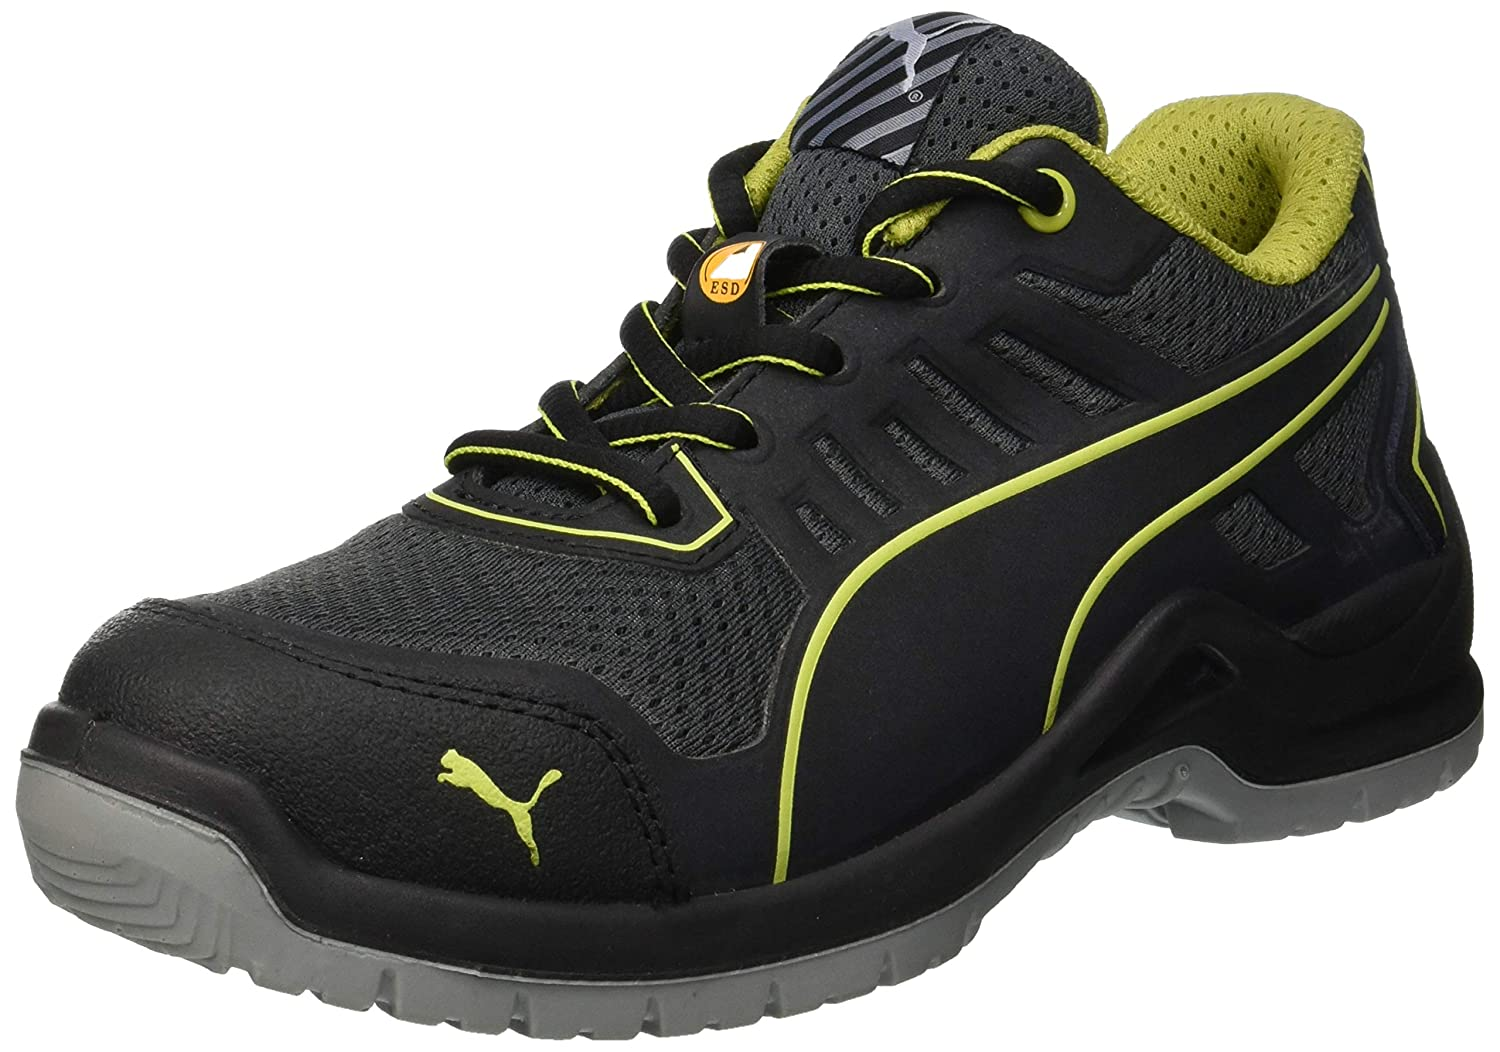 Puma Safety Footwear Womens/Ladies Fuse TC Low S1P Safety Shoes